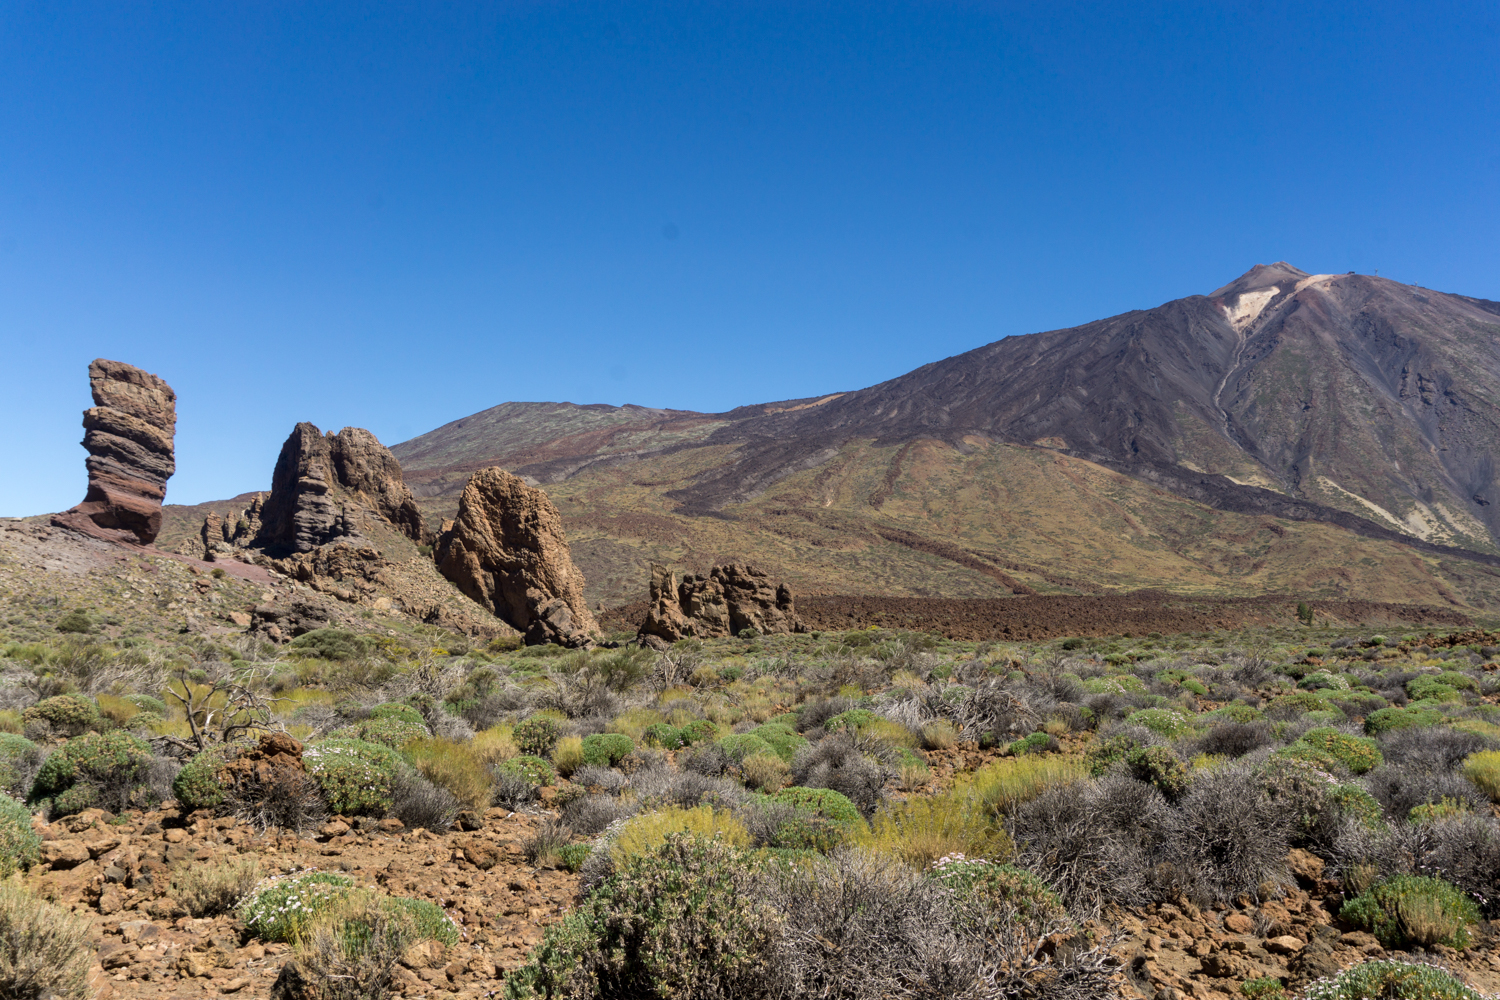 On our first full day, we headed to Mount Teide, the highest point in Spain, as well as the third highest volcanic Island in the world.